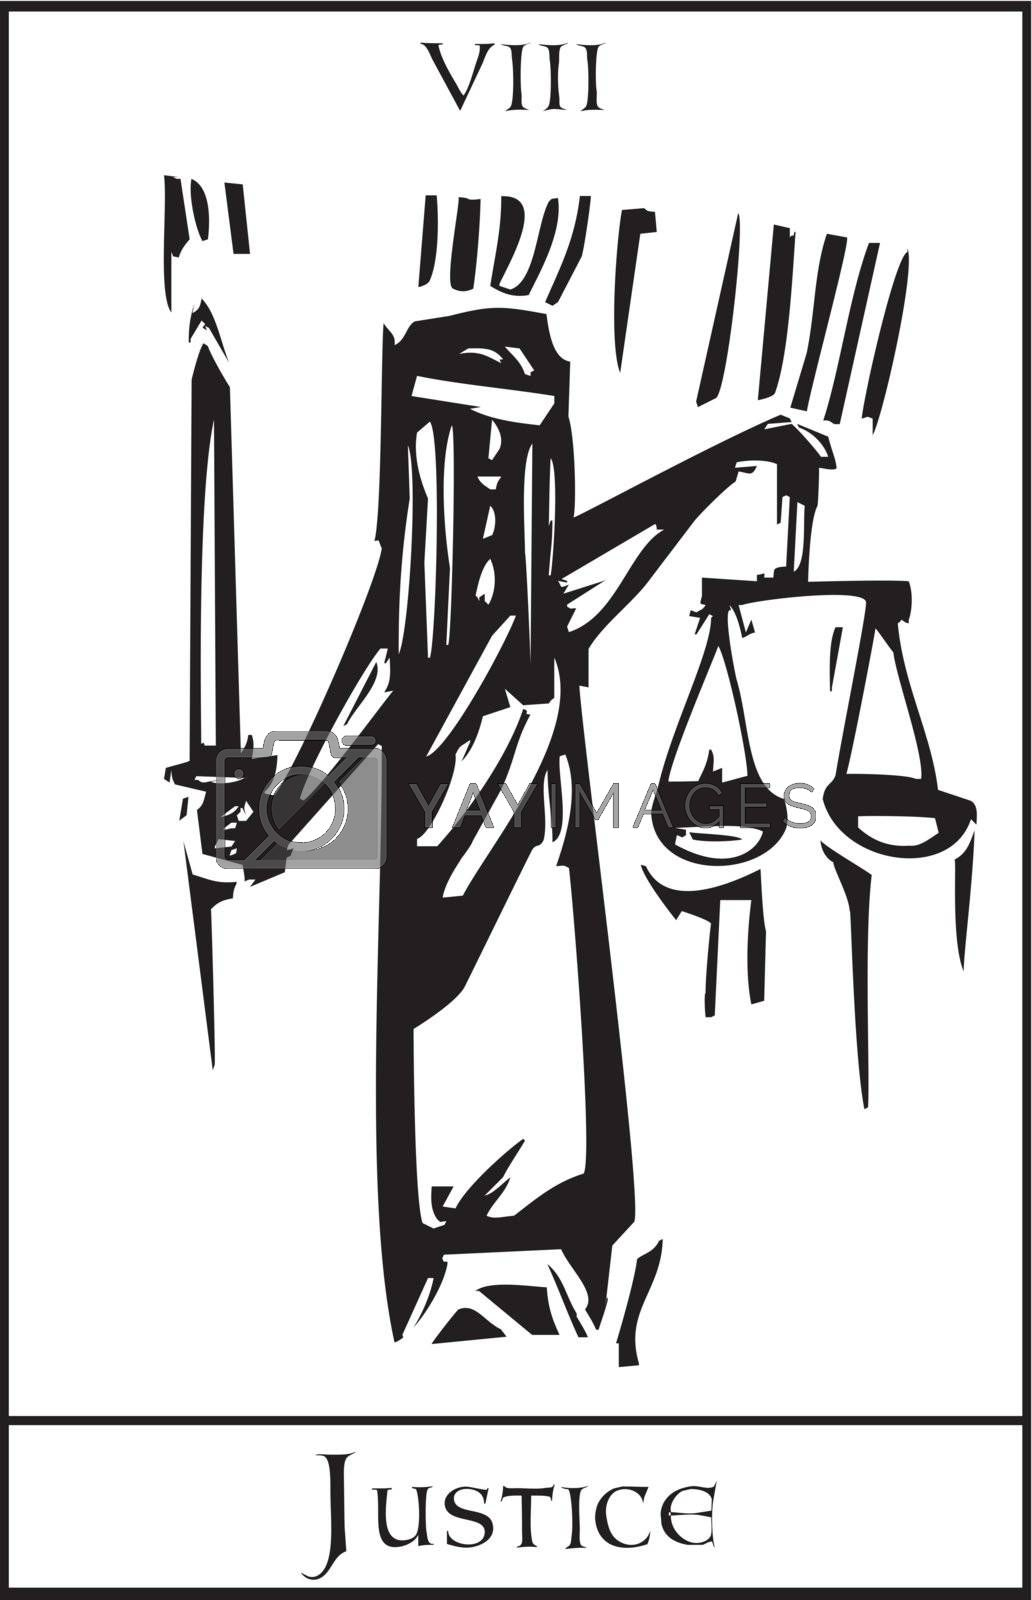 Woodcut expressionist style Tarot Major Arcana image of Justice